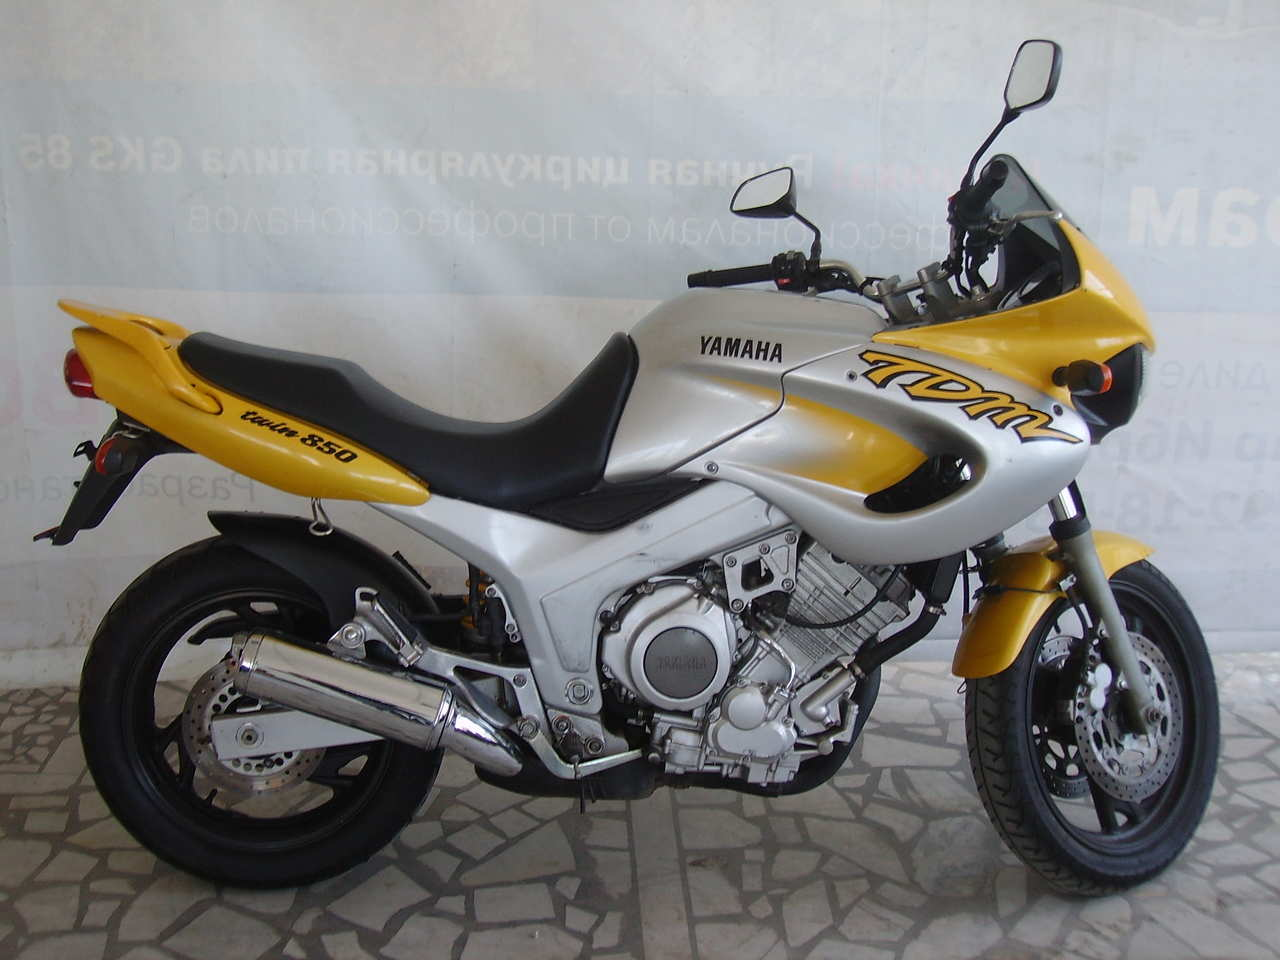 1998 Yamaha TDM Pictures, 850cc. For Sale